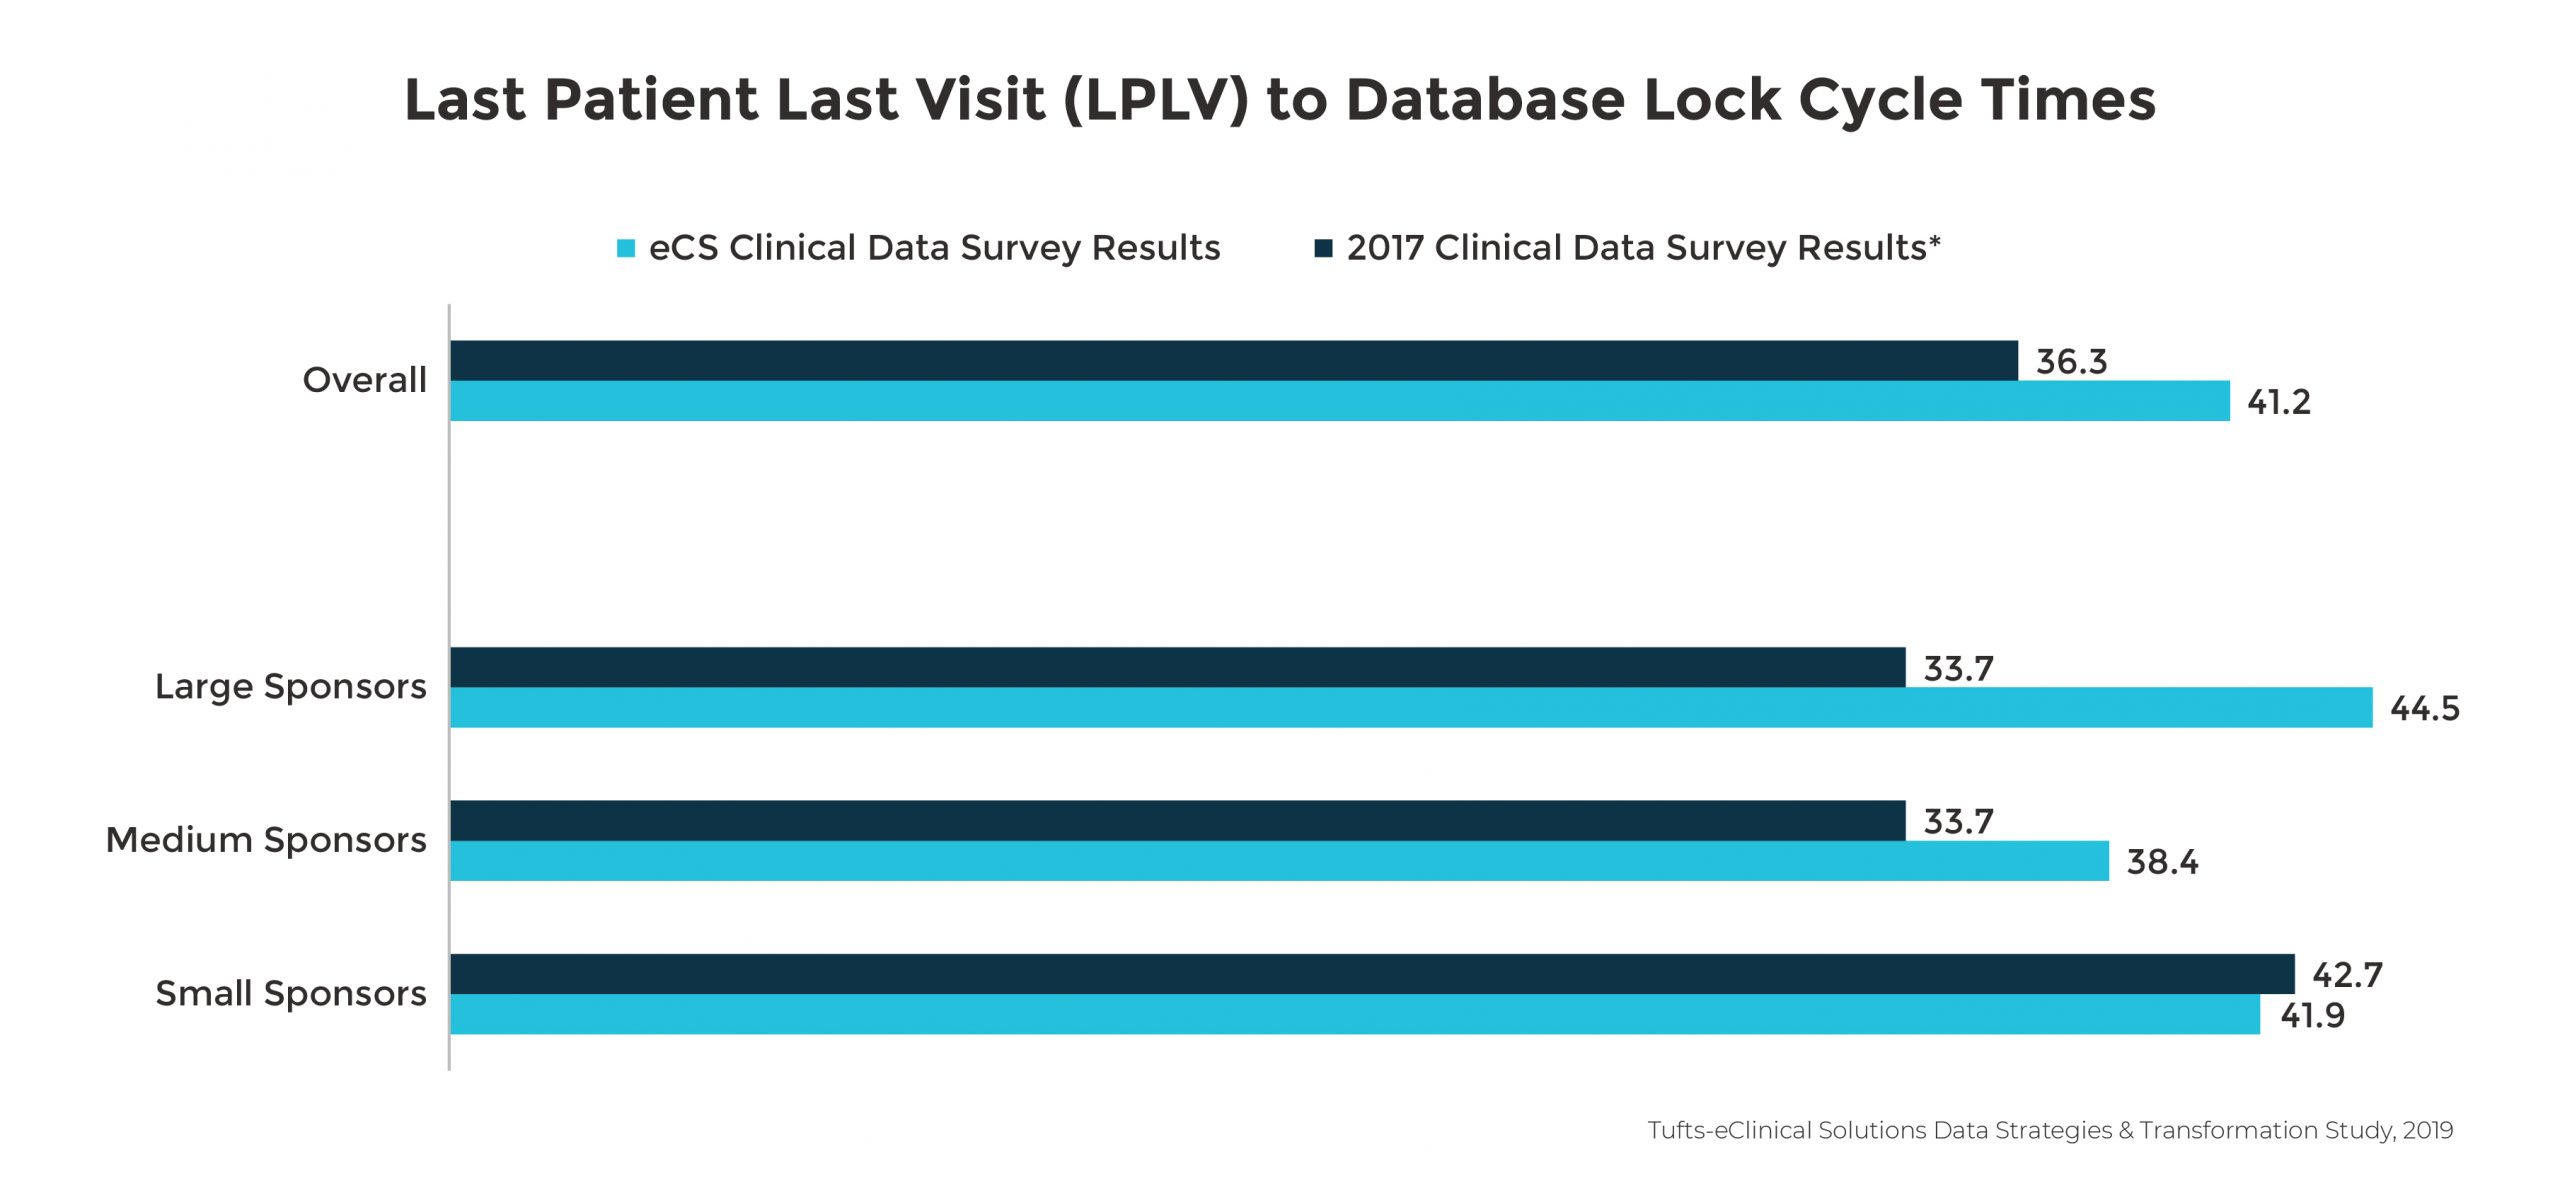 Last Patient Last Visit (LPLV) to Database Lock Cycle Times